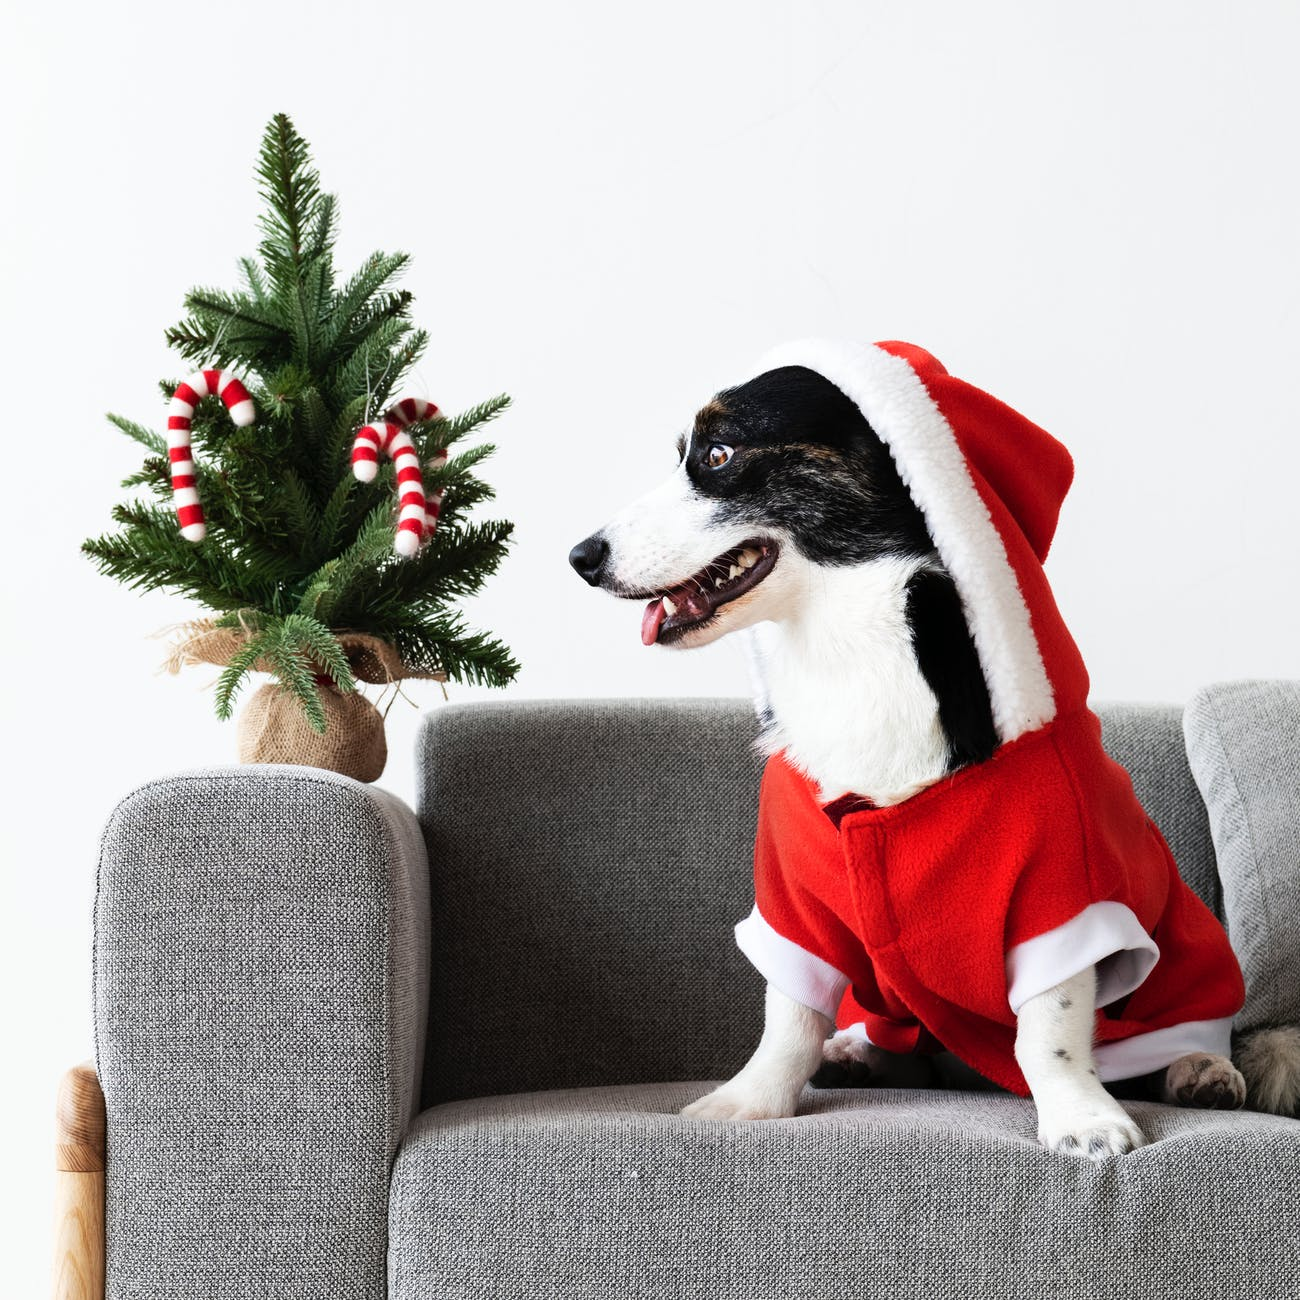 photo of dog sitting on couch